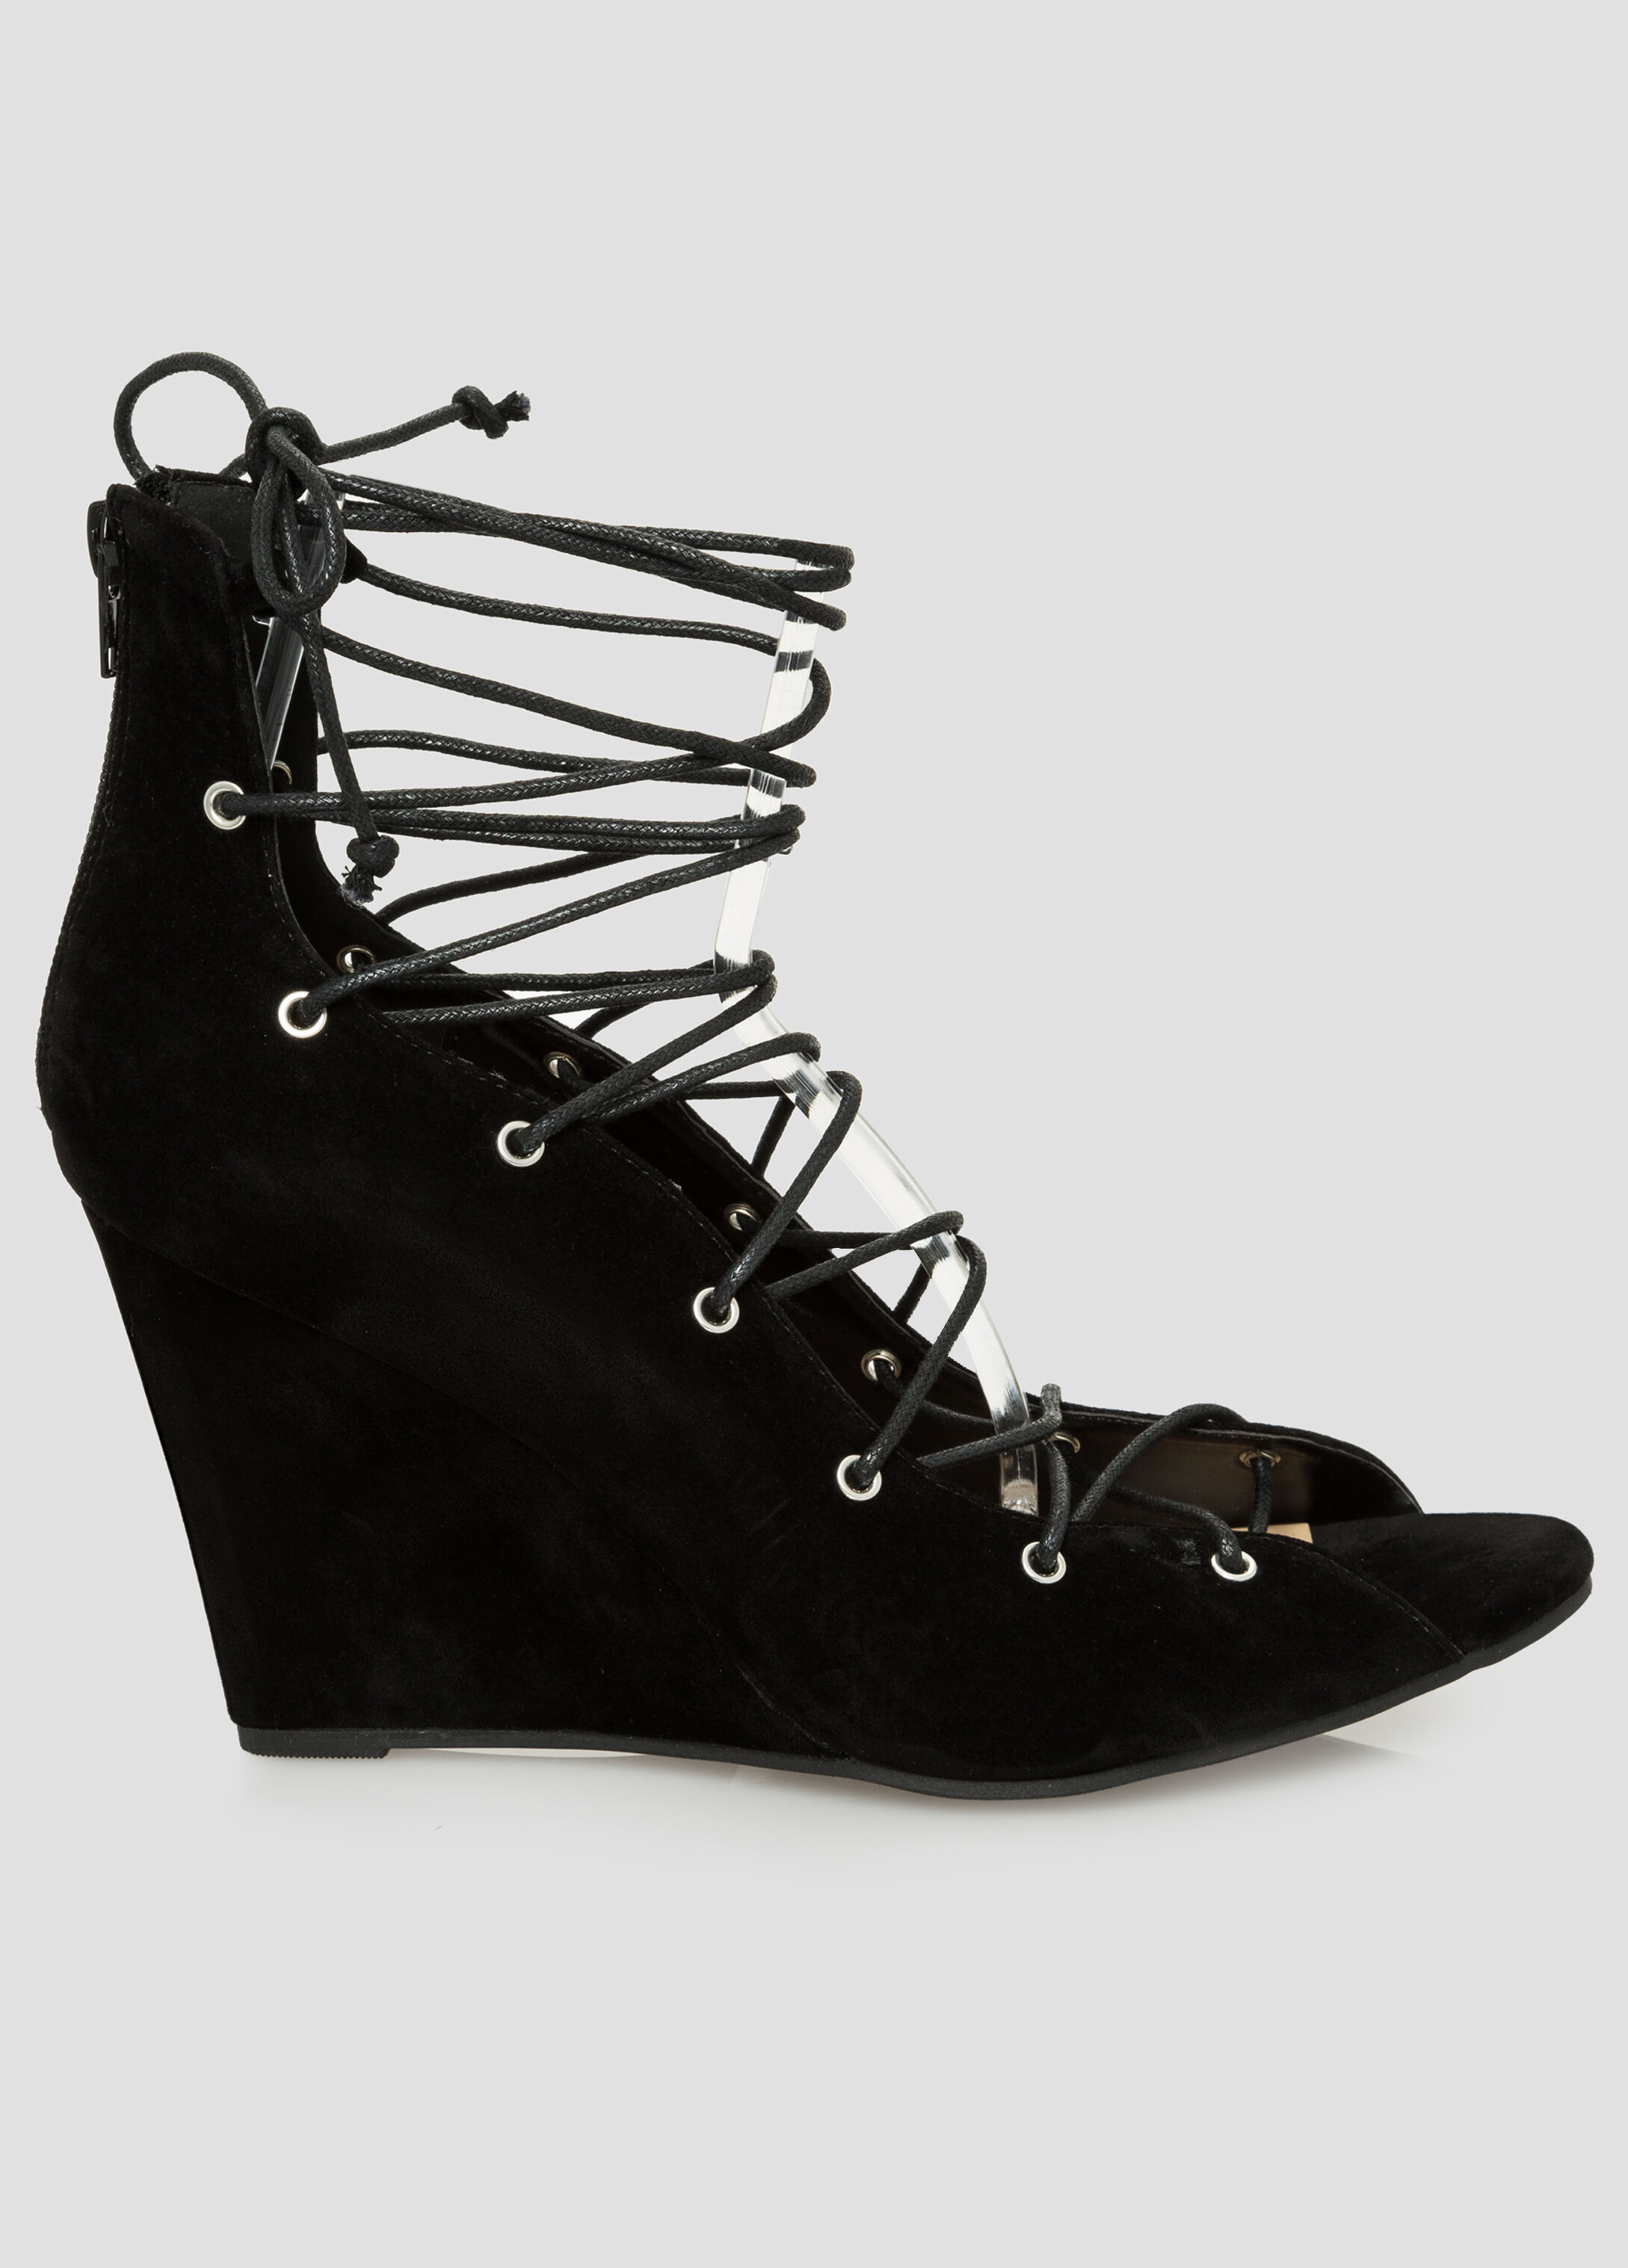 Lace-Up Wedge - Wide Width